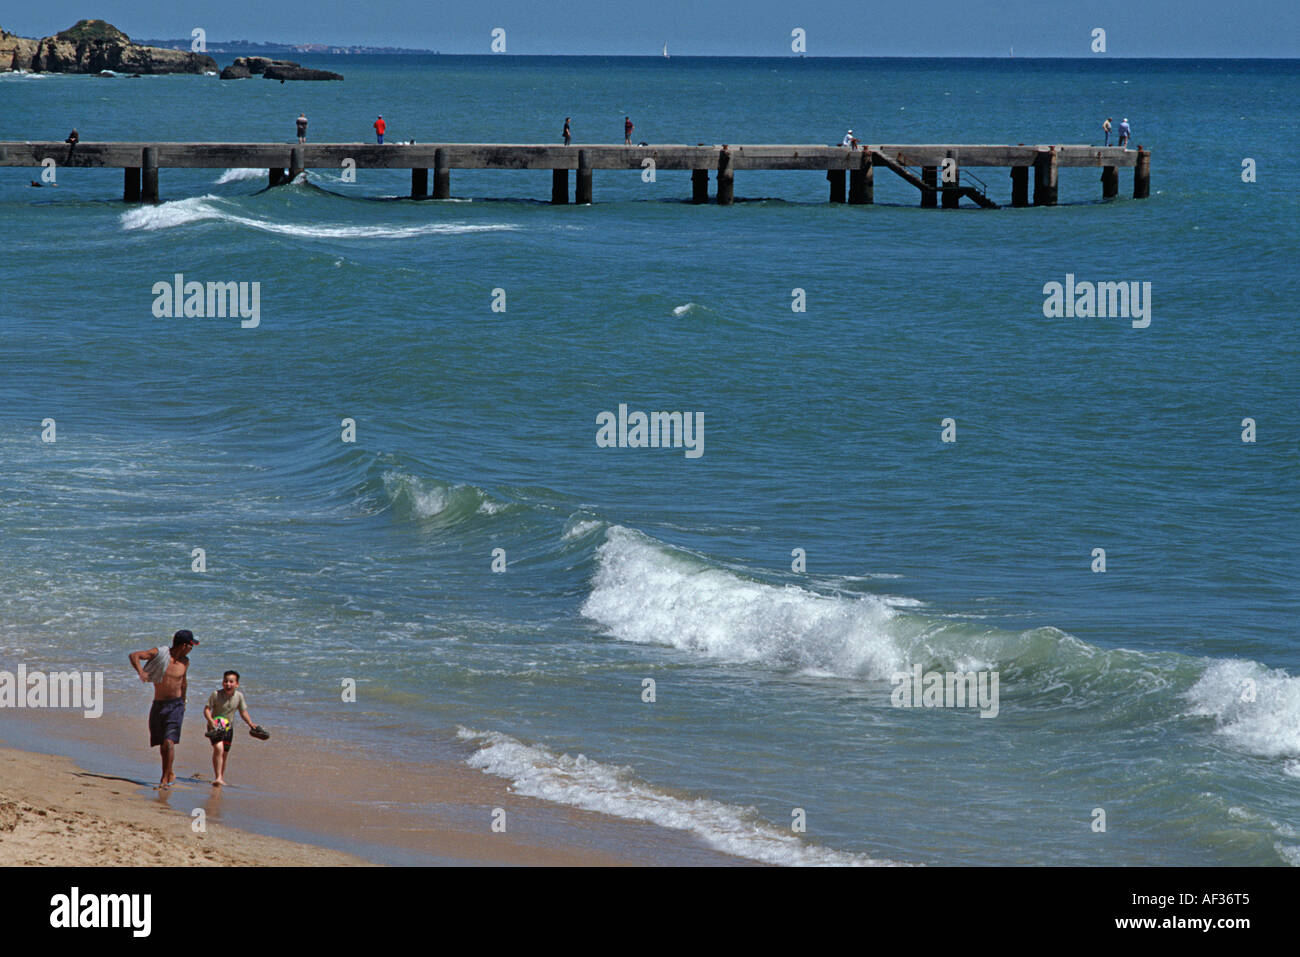 walking along the shoreline at Albufeira Algarve Portugal Jetty with fishermen in background - Stock Image